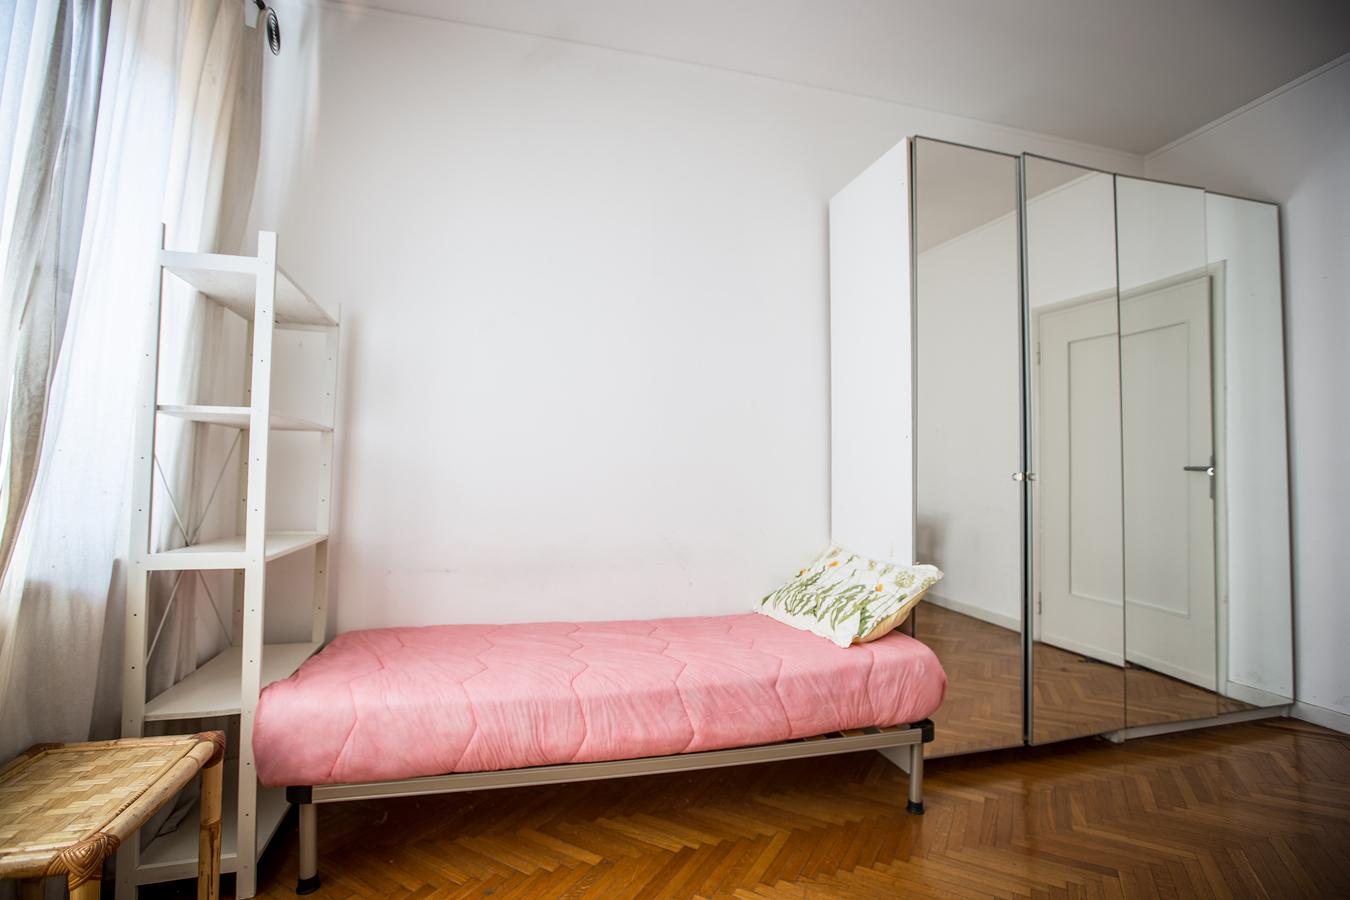 Student Accomodation for rent in double room in Viale Monte Ceneri, 74, in Milano, Italy